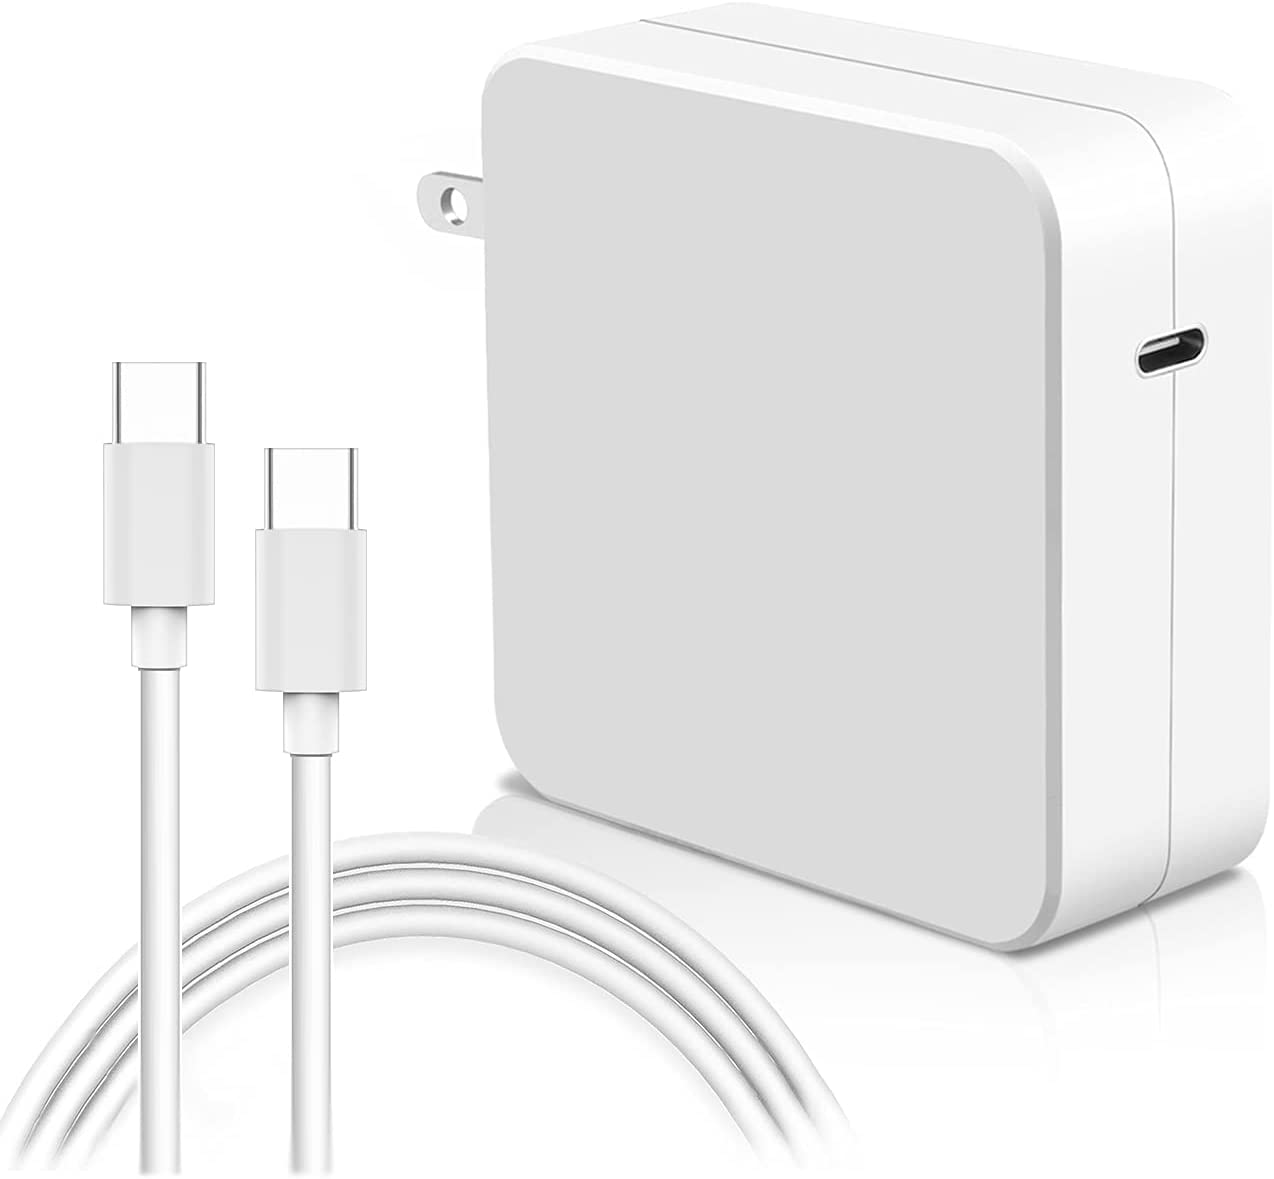 96W USB-C Power Adapter and USB-C Charge Cable (2m) for MacBook Pro MacBook Air Charger or Devices That Charge via USB-C Port